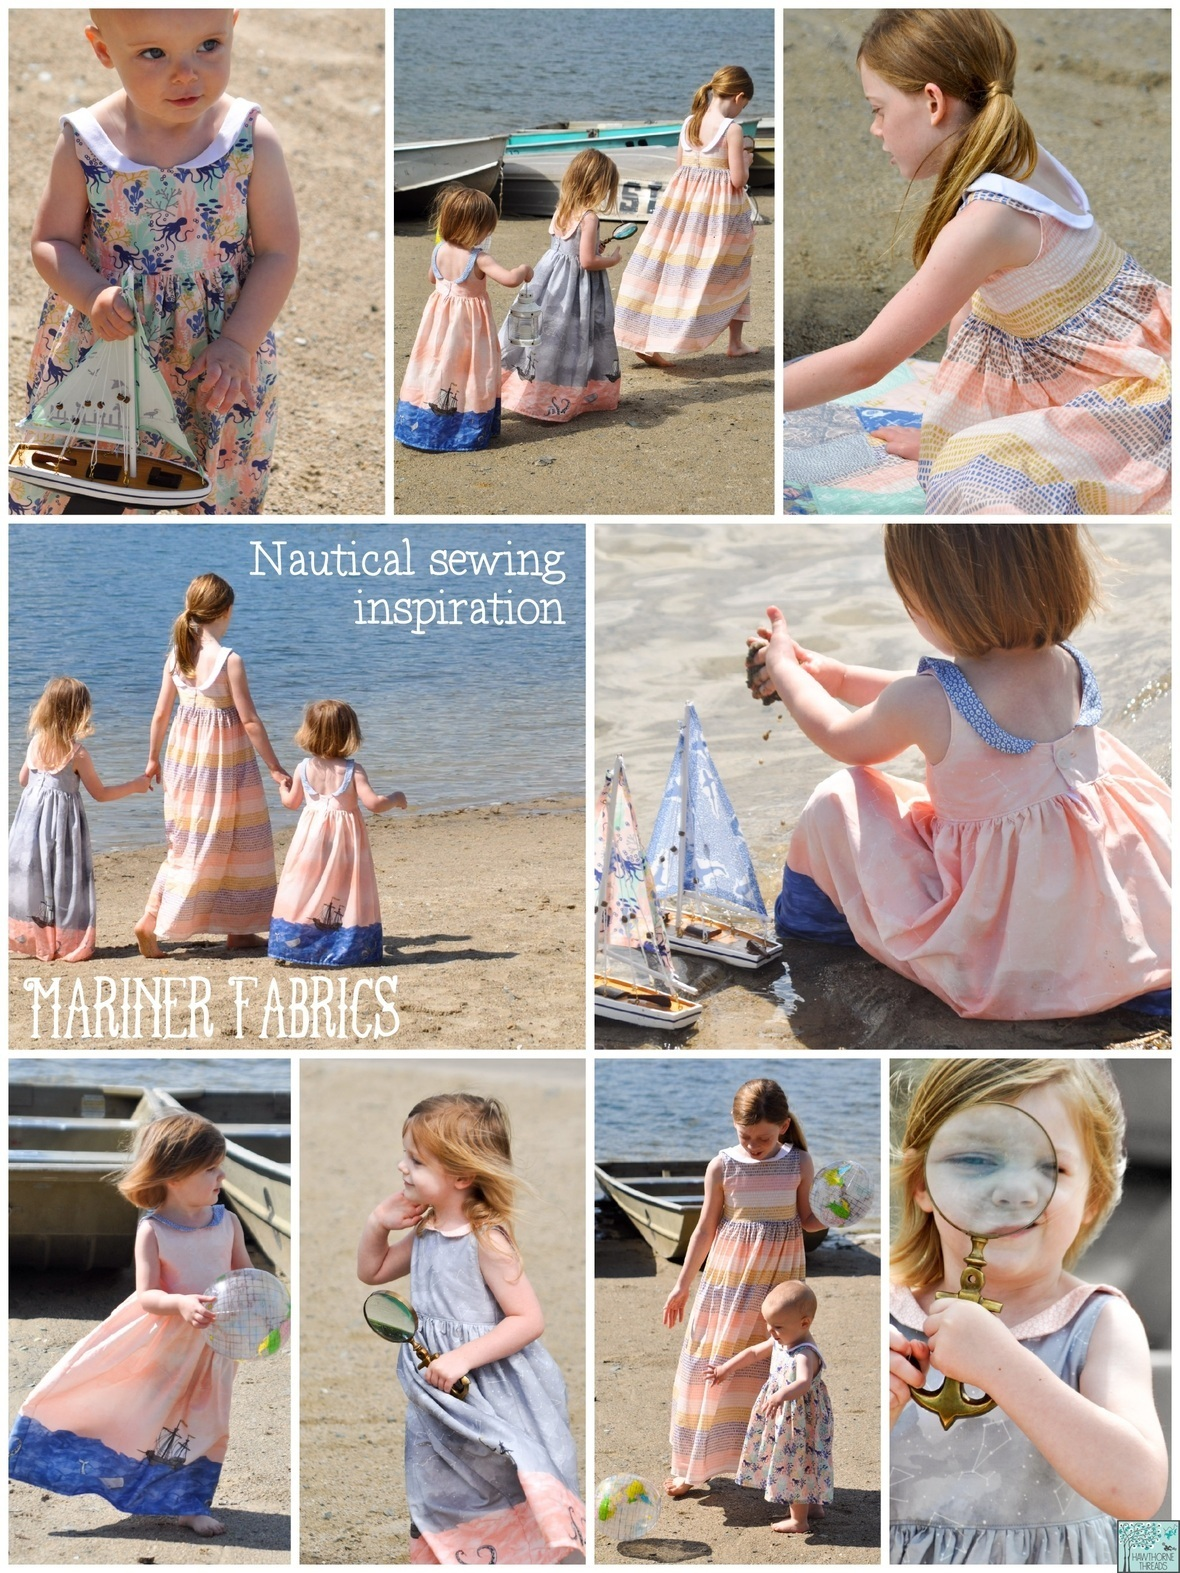 Mariner Fabric Nautical Sewing Inspiration with text